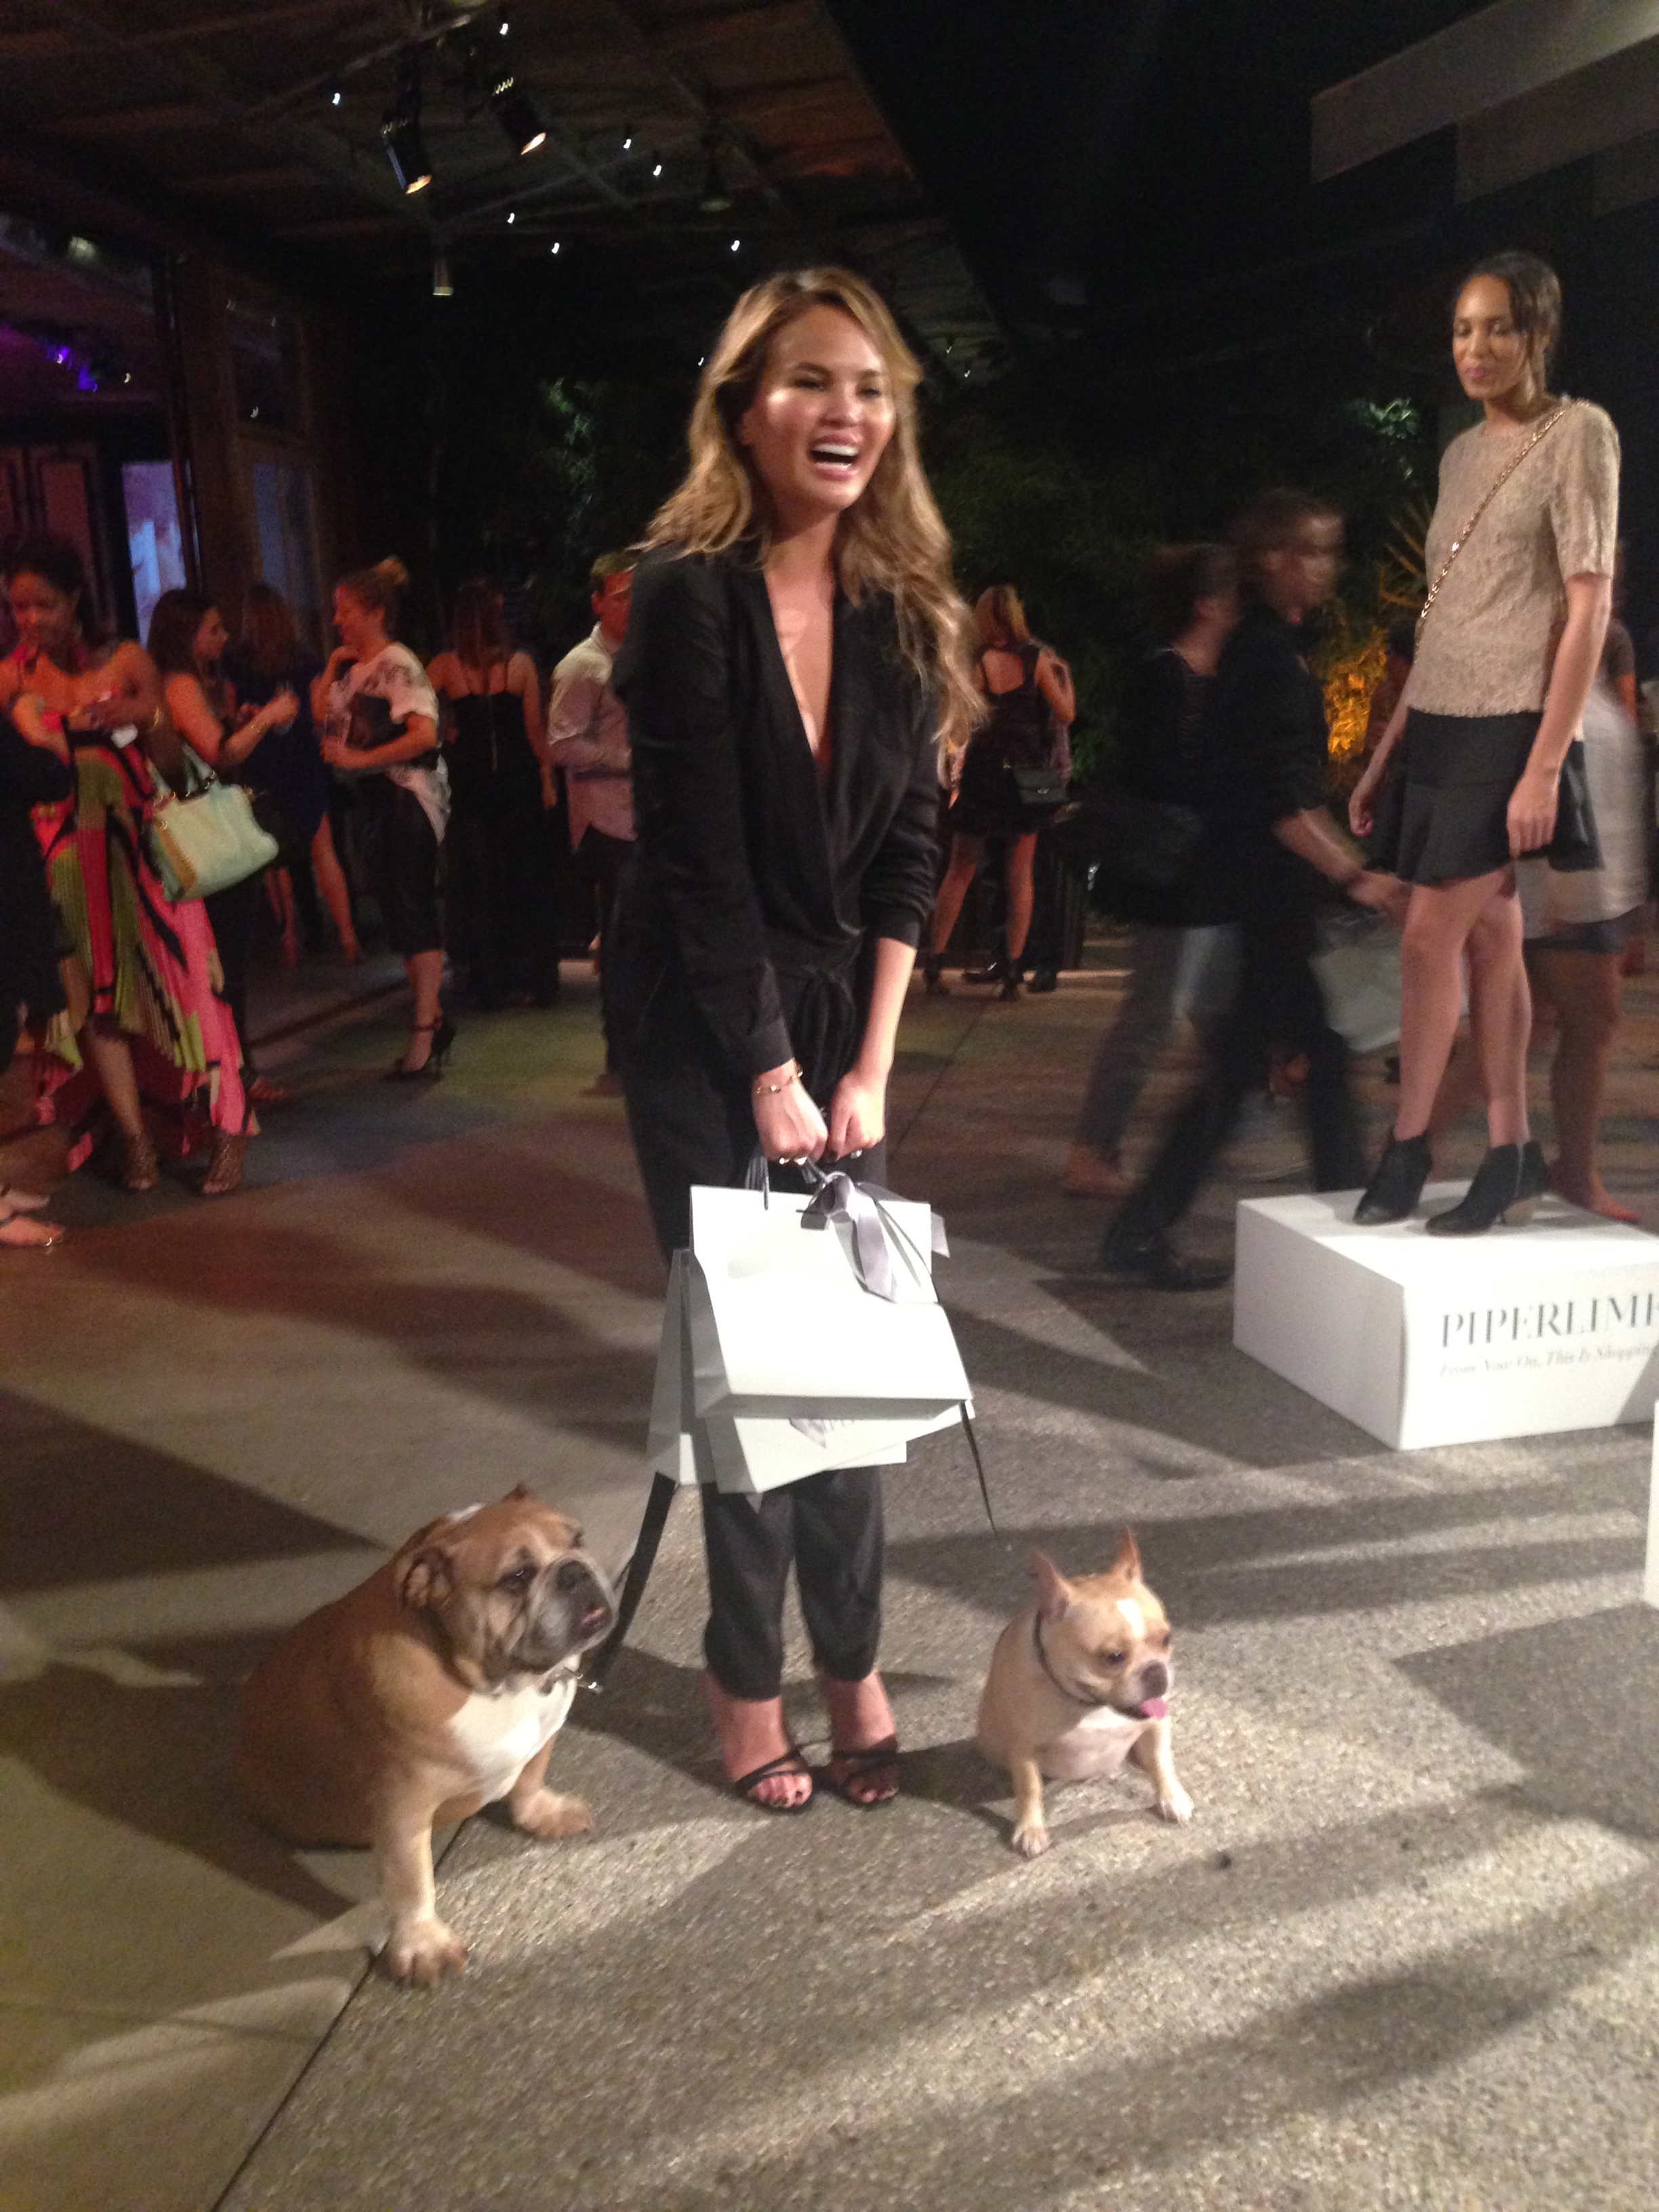 Chrissy Teigen (wearing Piperlime Collection) and her pooches at the event!